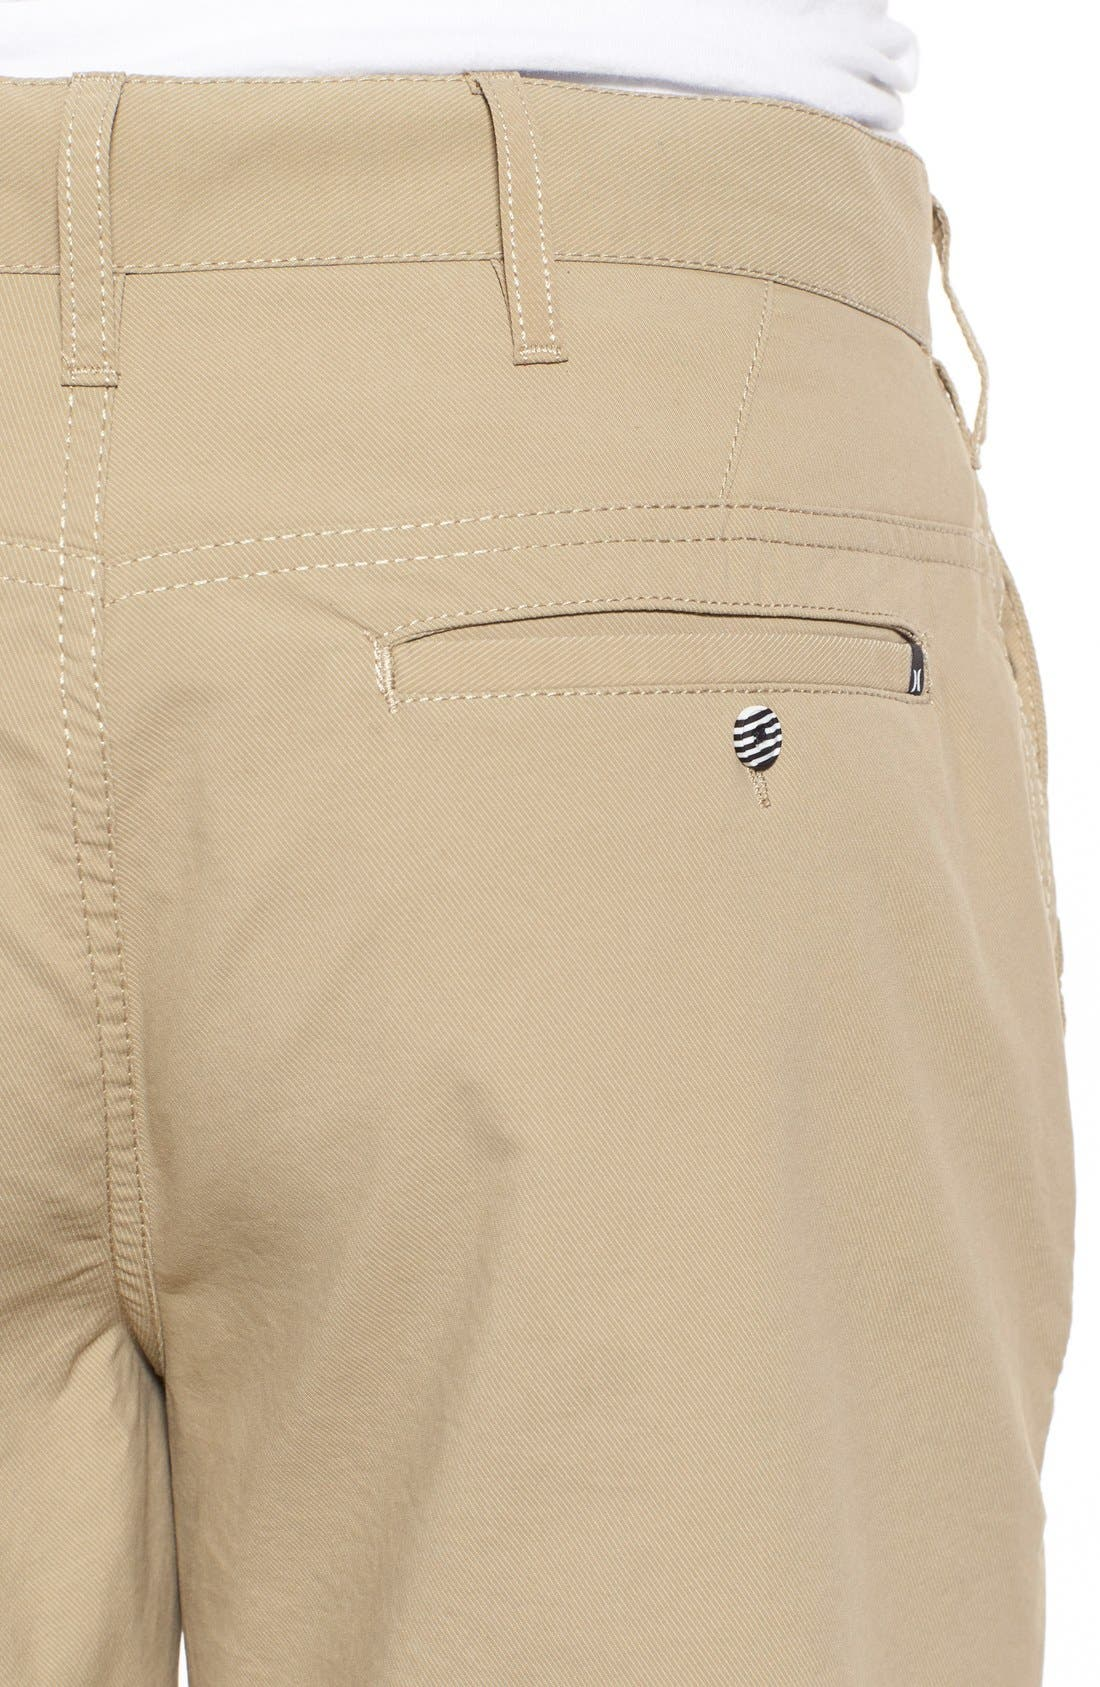 'Dry Out' Dri-FIT<sup>™</sup> Chino Shorts,                             Alternate thumbnail 142, color,